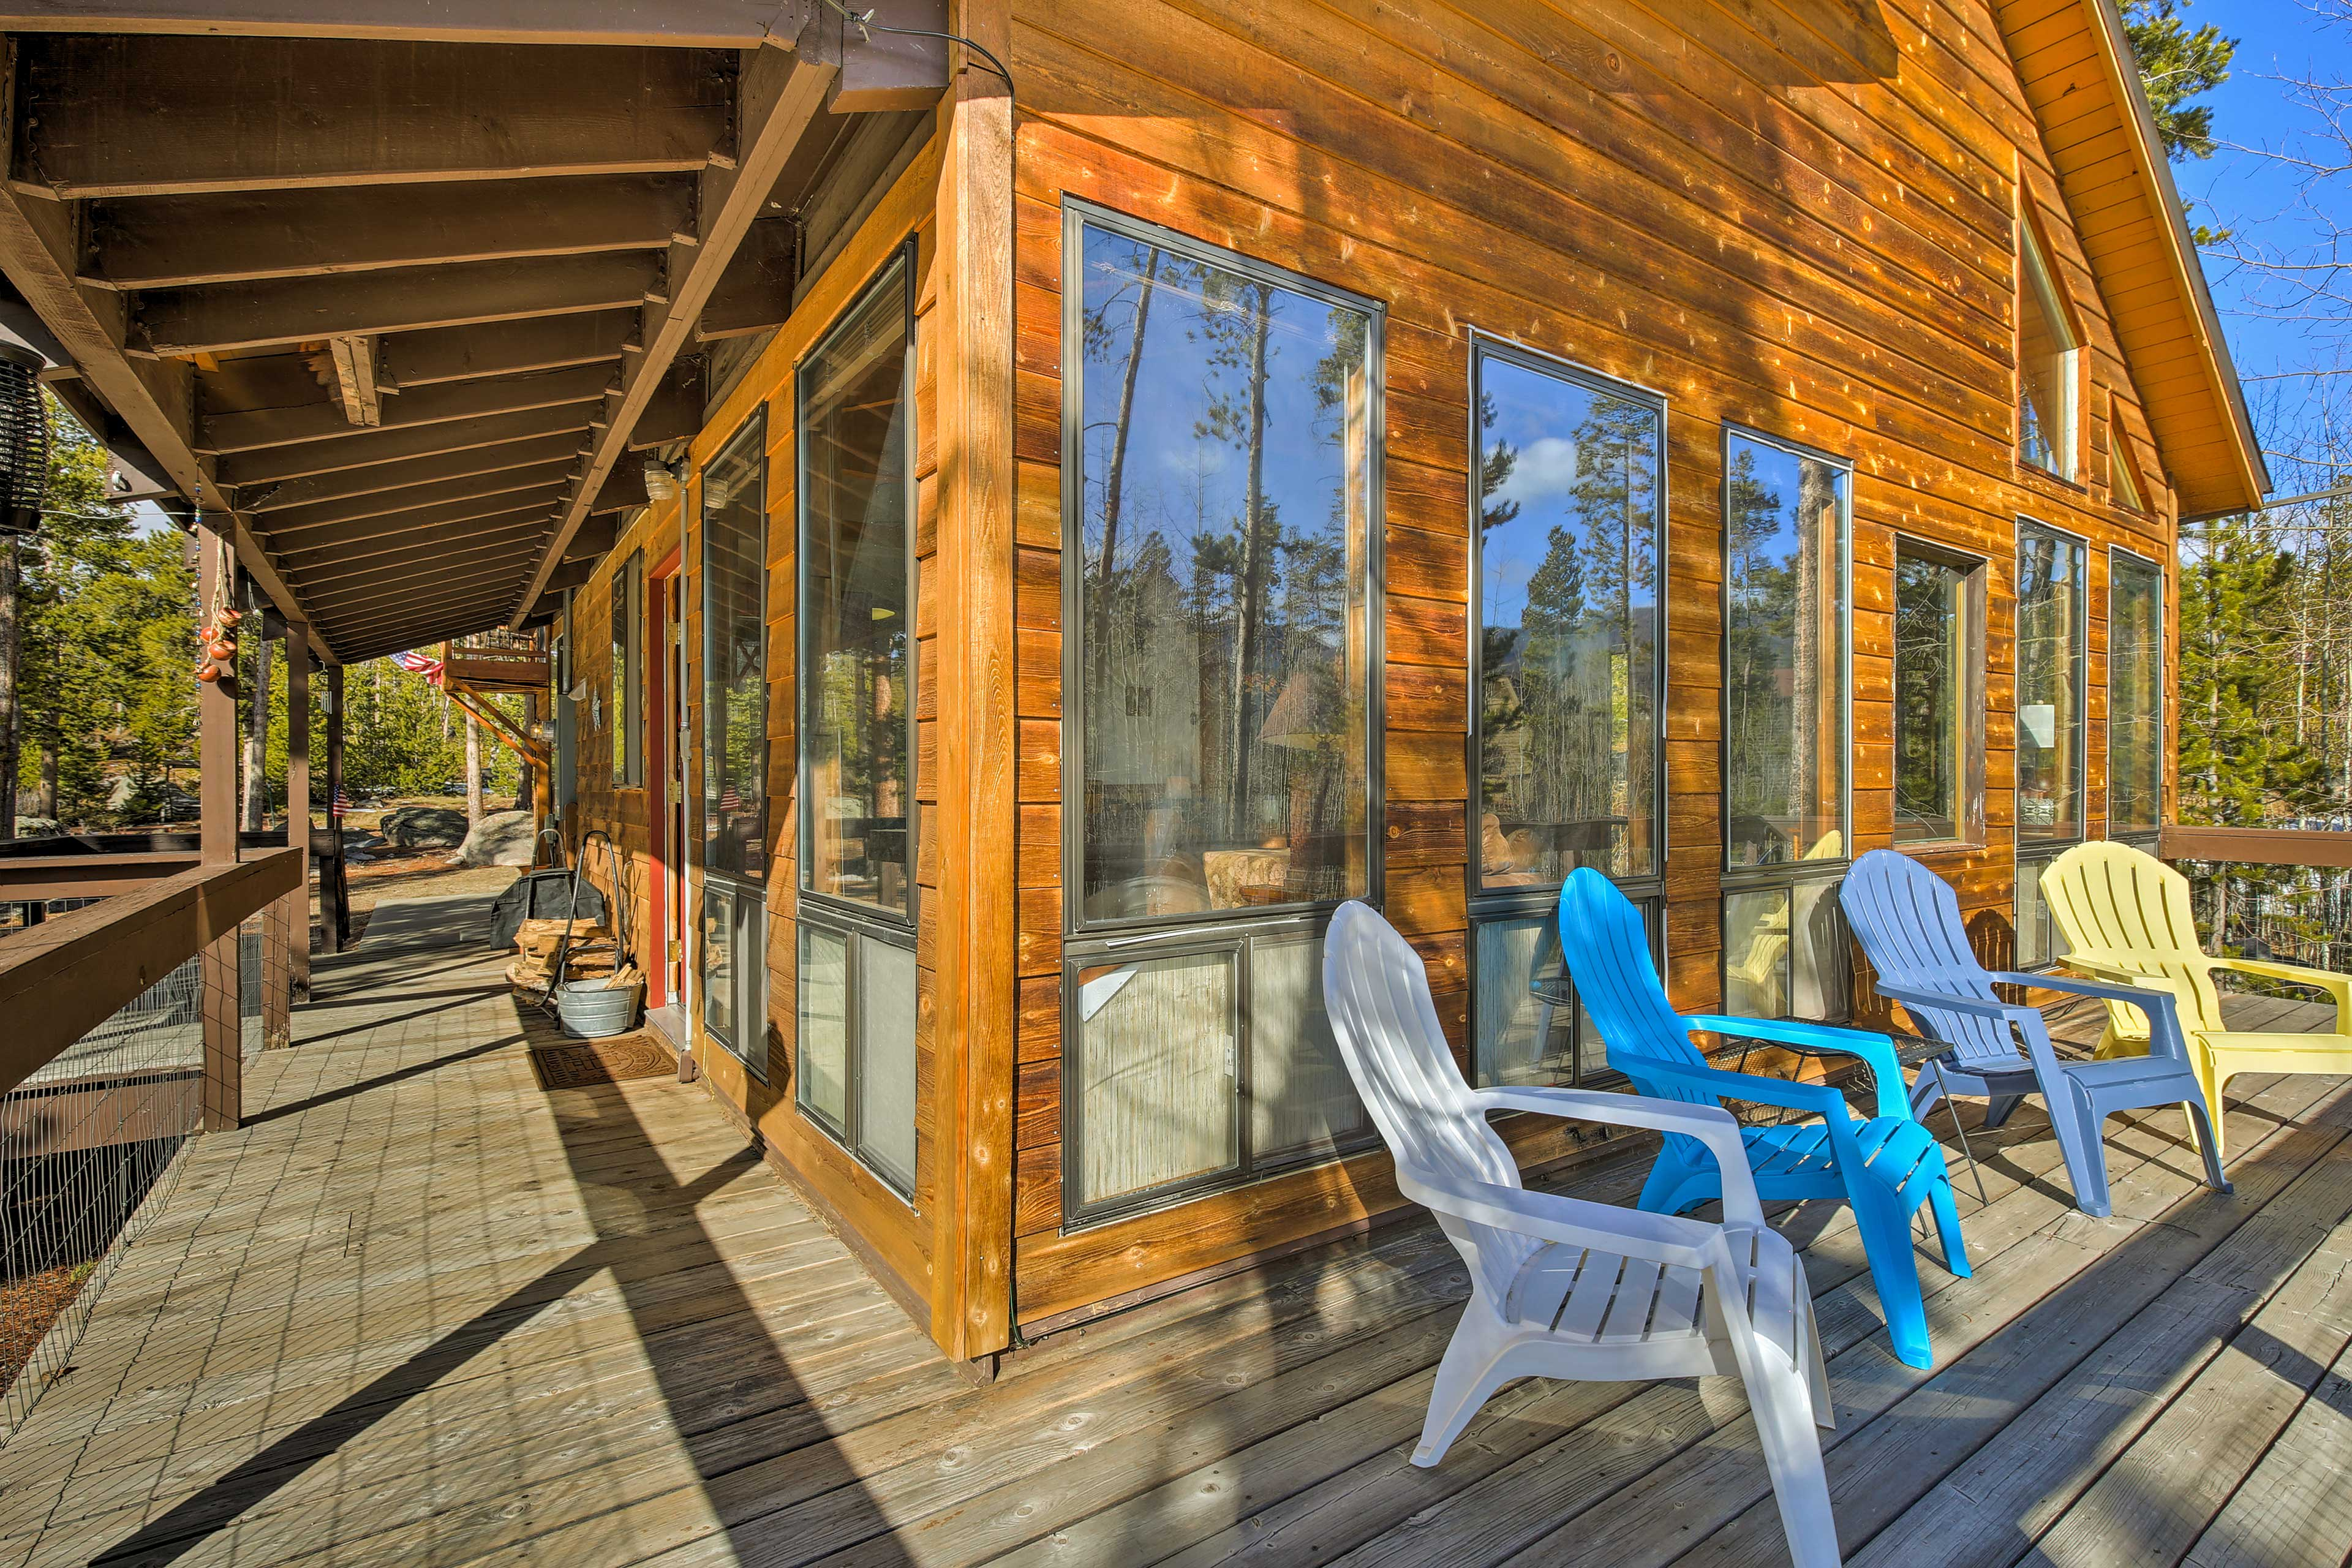 The wrap-around porch is the perfect place to watch for wildlife.